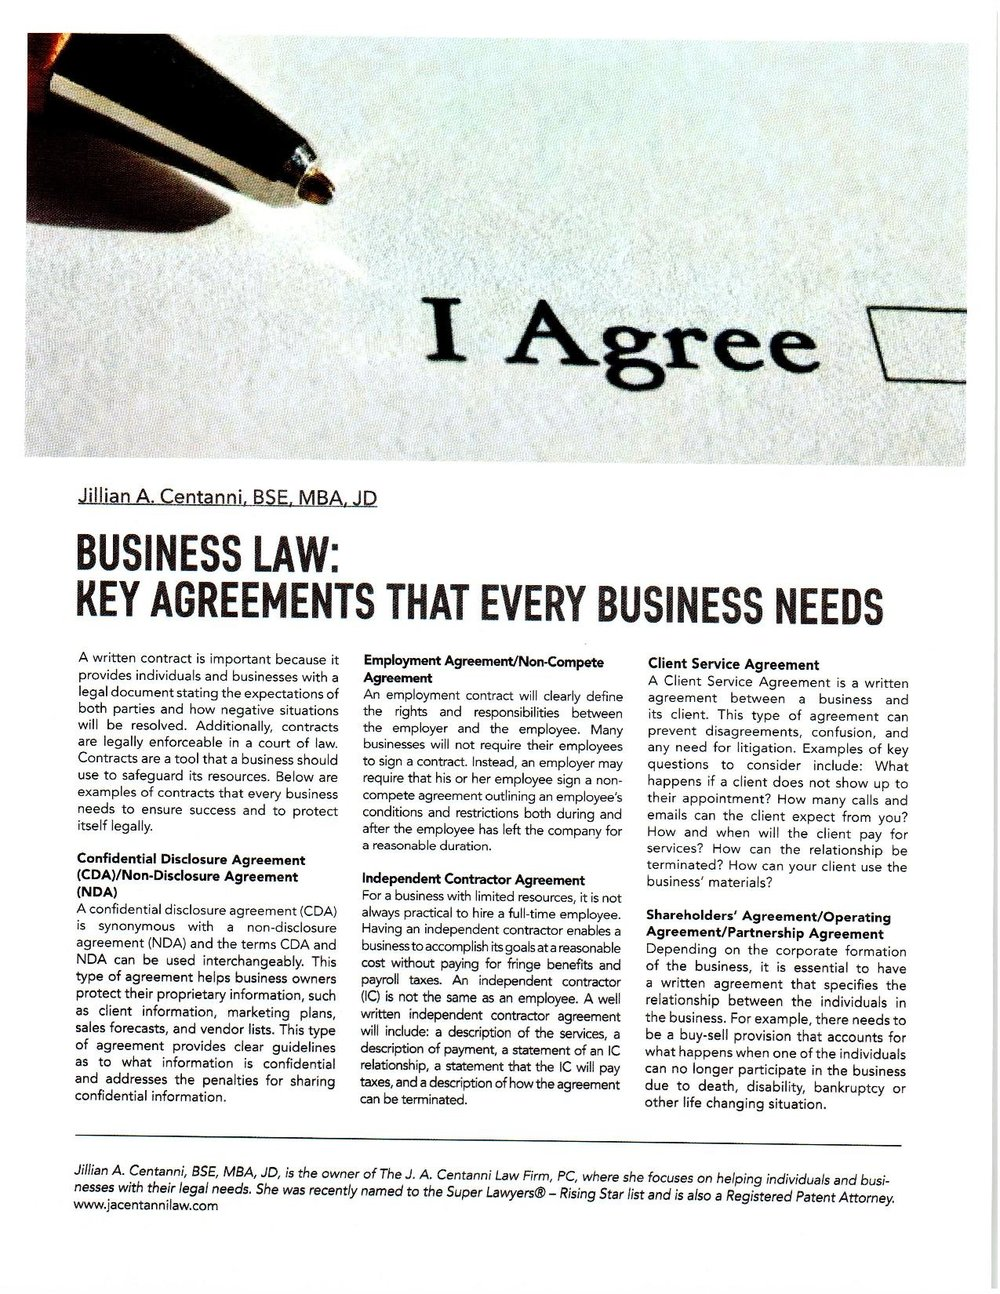 24 Seven Sept Business Law (9.16.17)-page-001.jpg